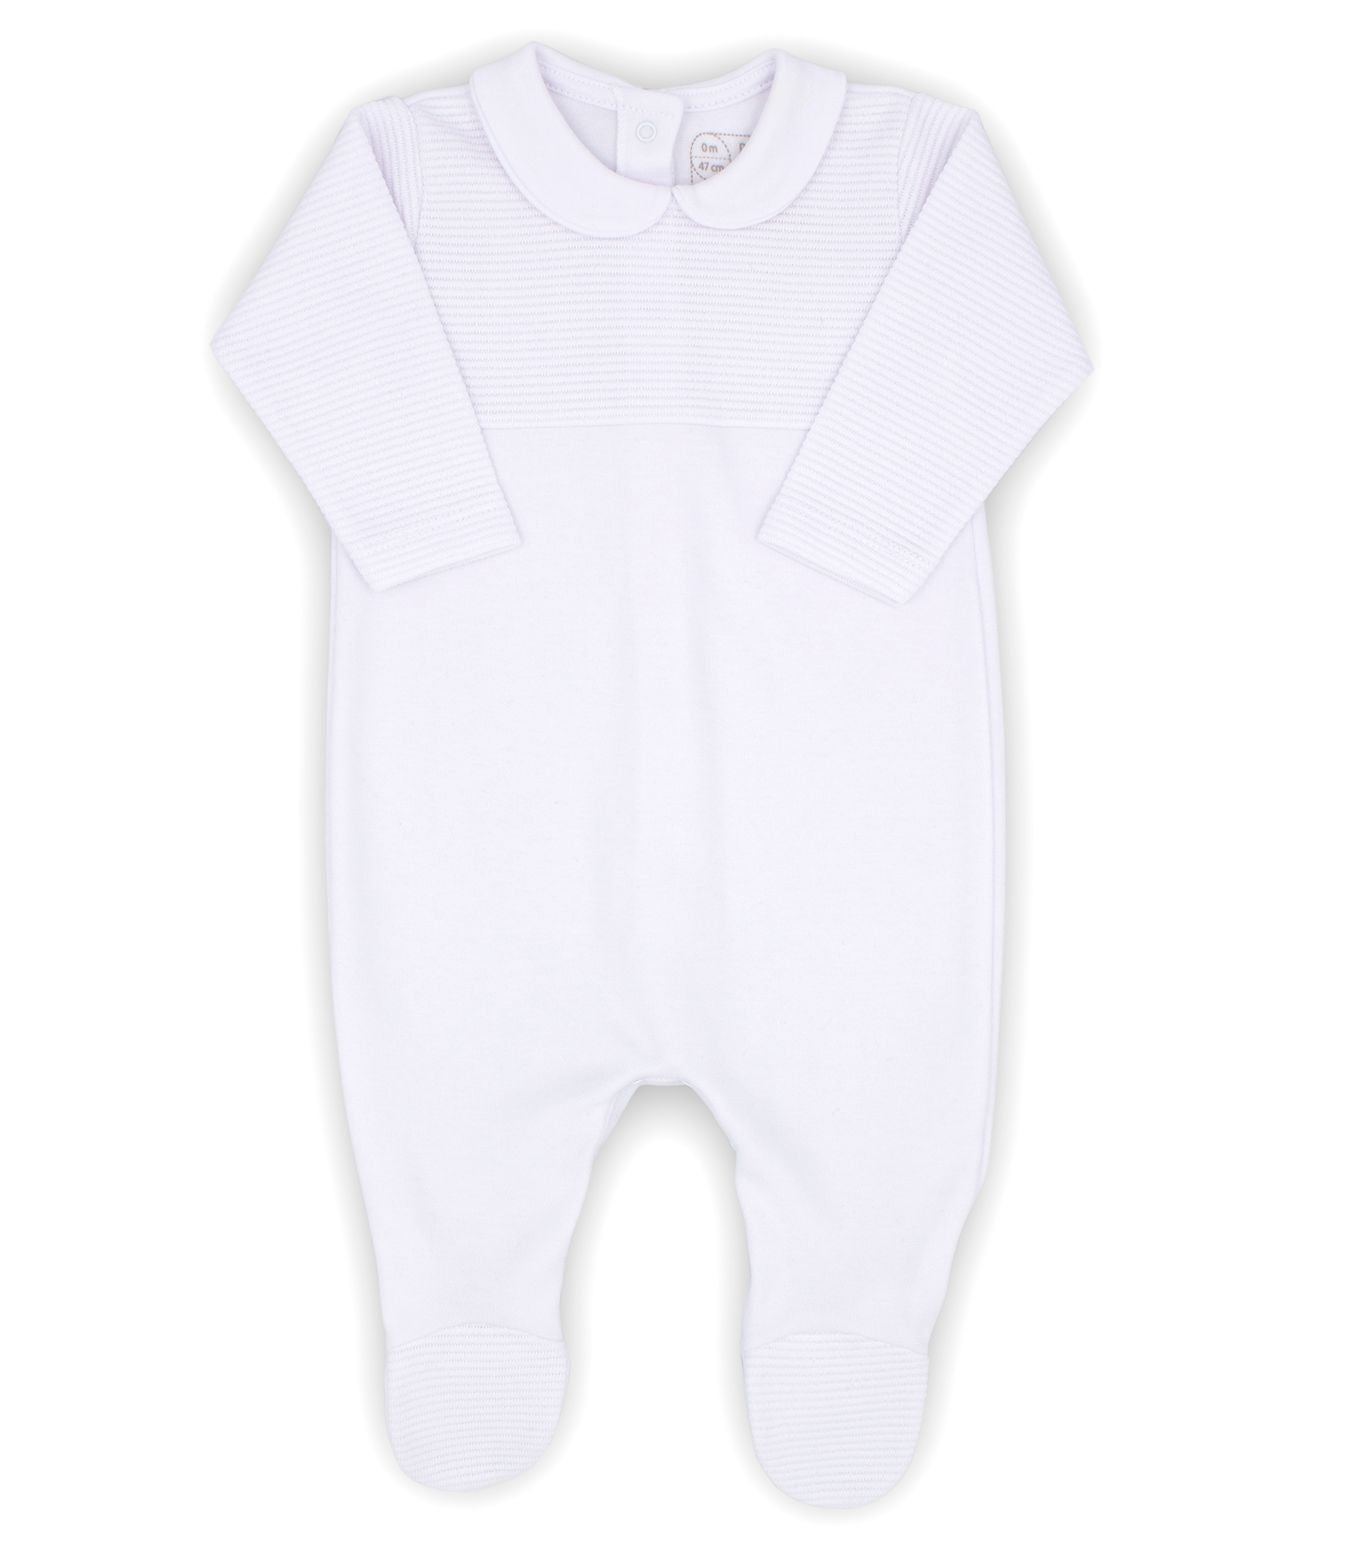 Rapife Baby Unisex White Cotton Babygrow Peter Pan Collar Gift